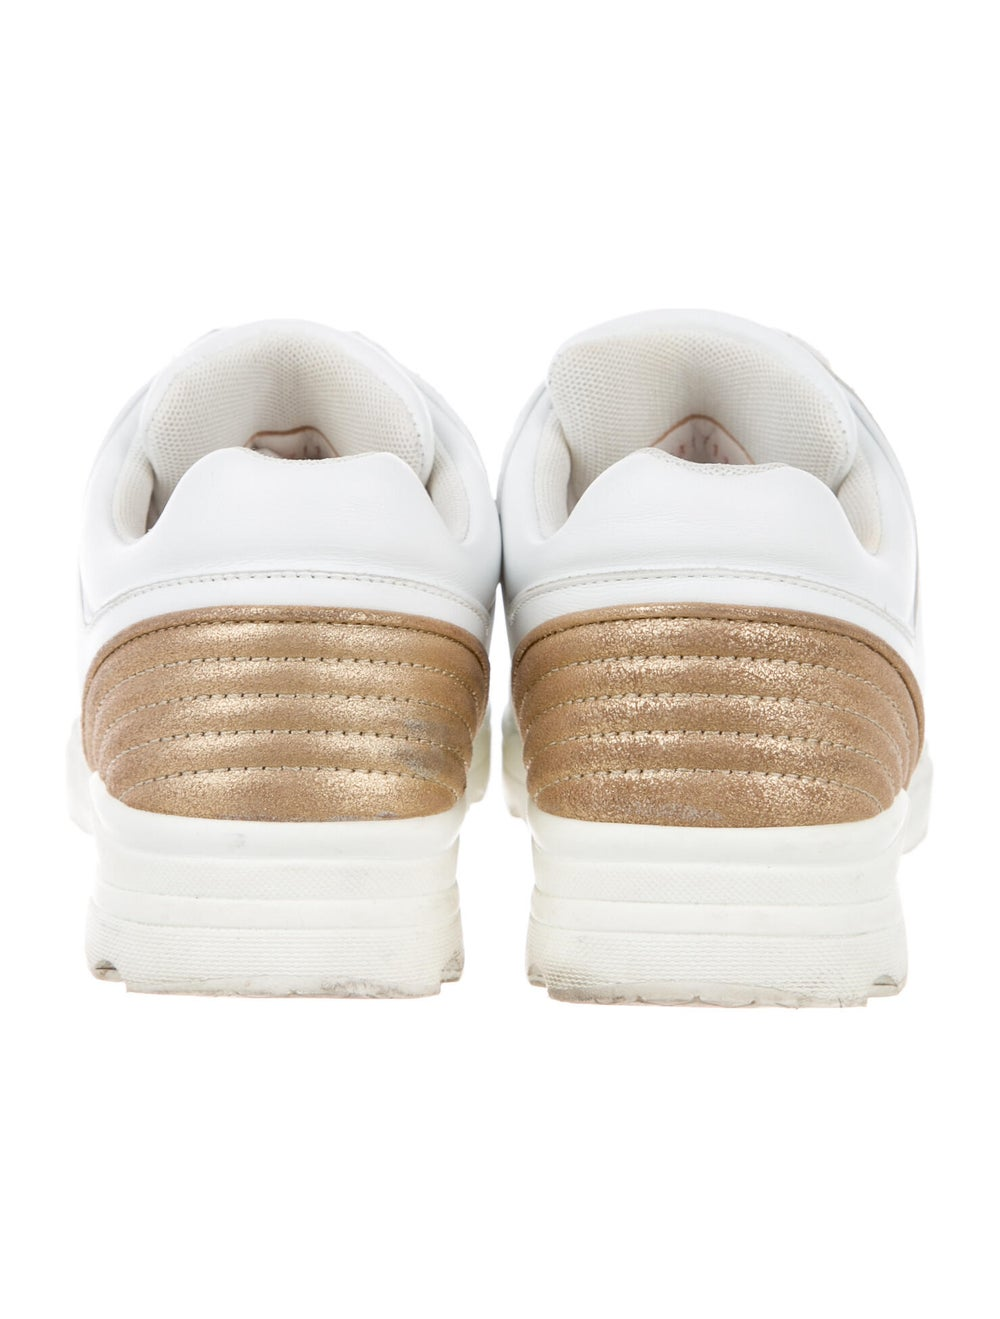 Chanel CC Low-Top Sneakers Sneakers White - image 4